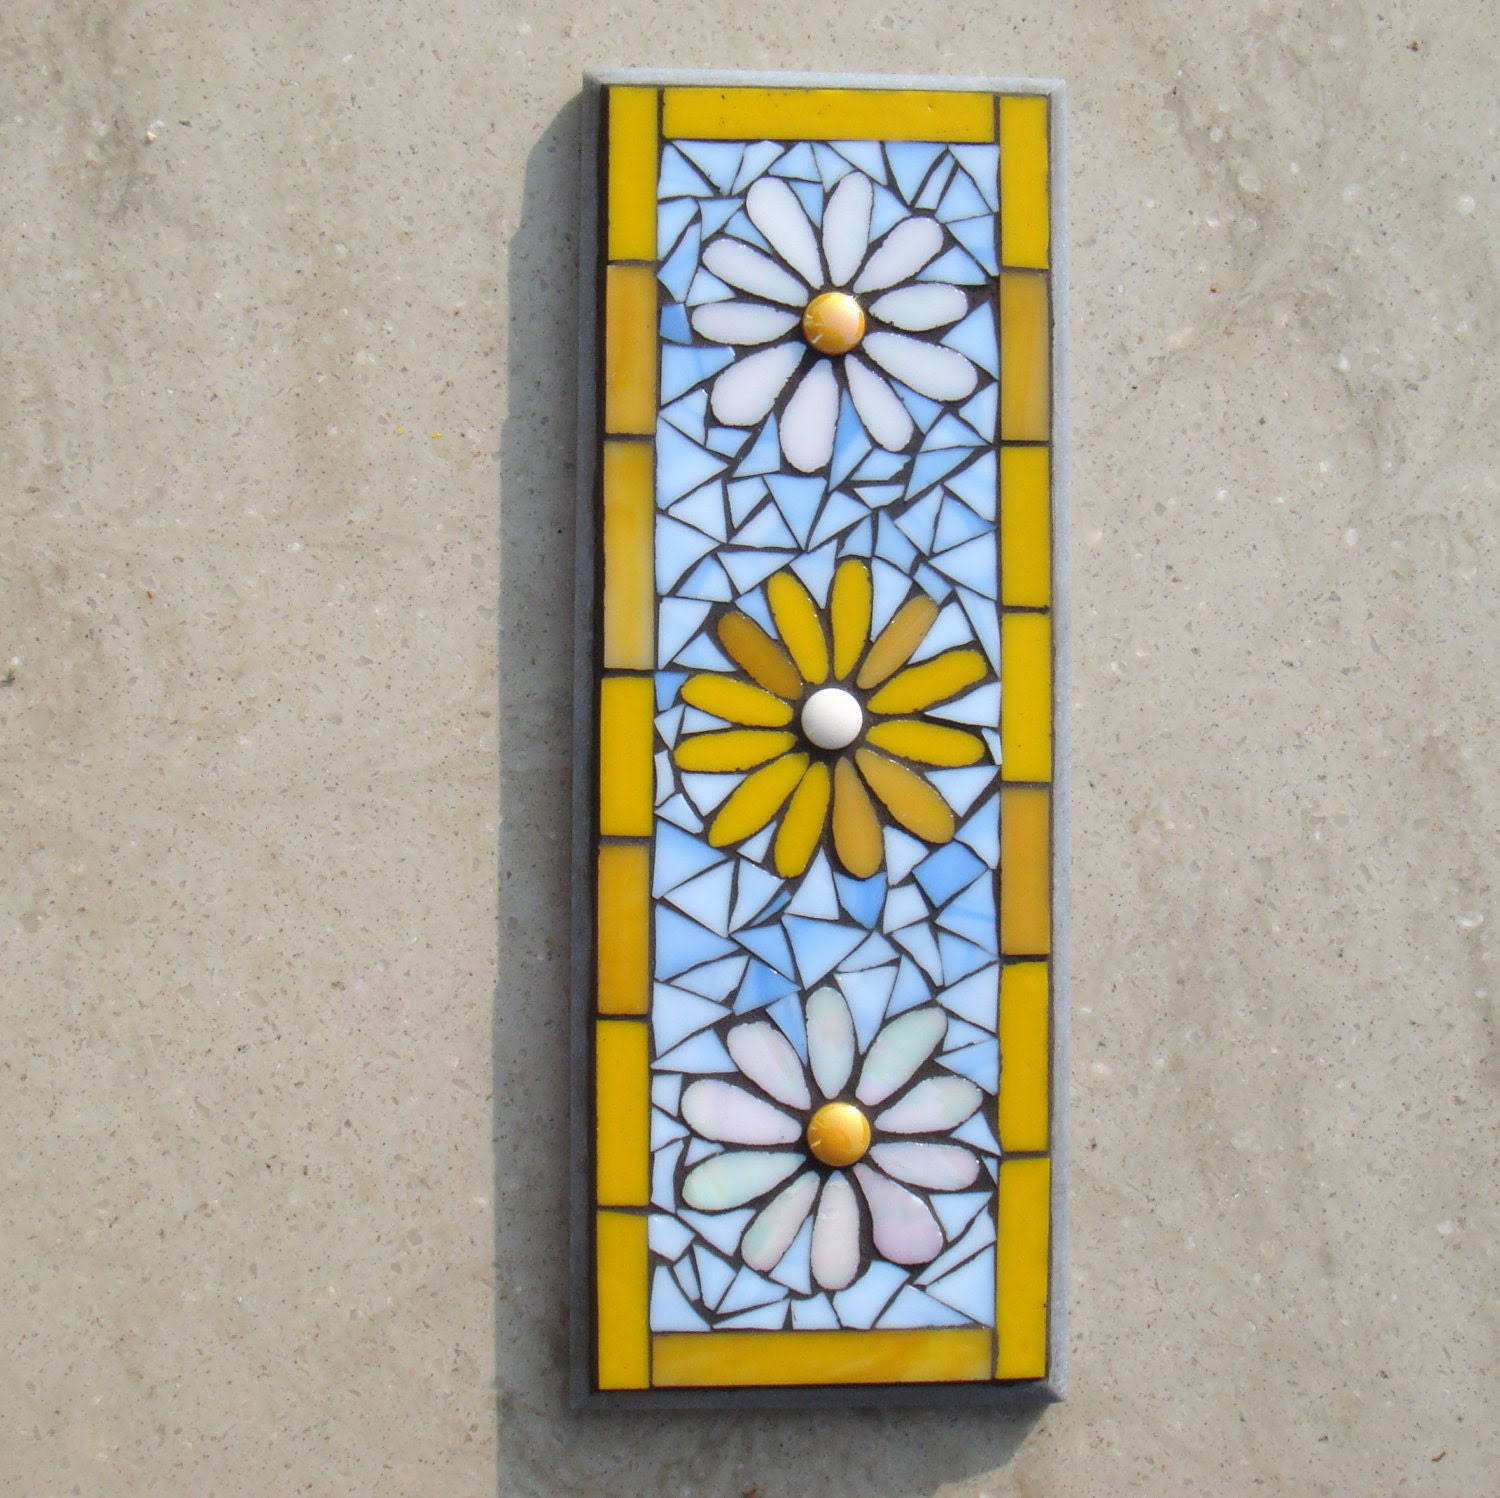 Daisies Mosaic Wall Plaque Decor IndoorOutdoor by FunkyMosaicsUK